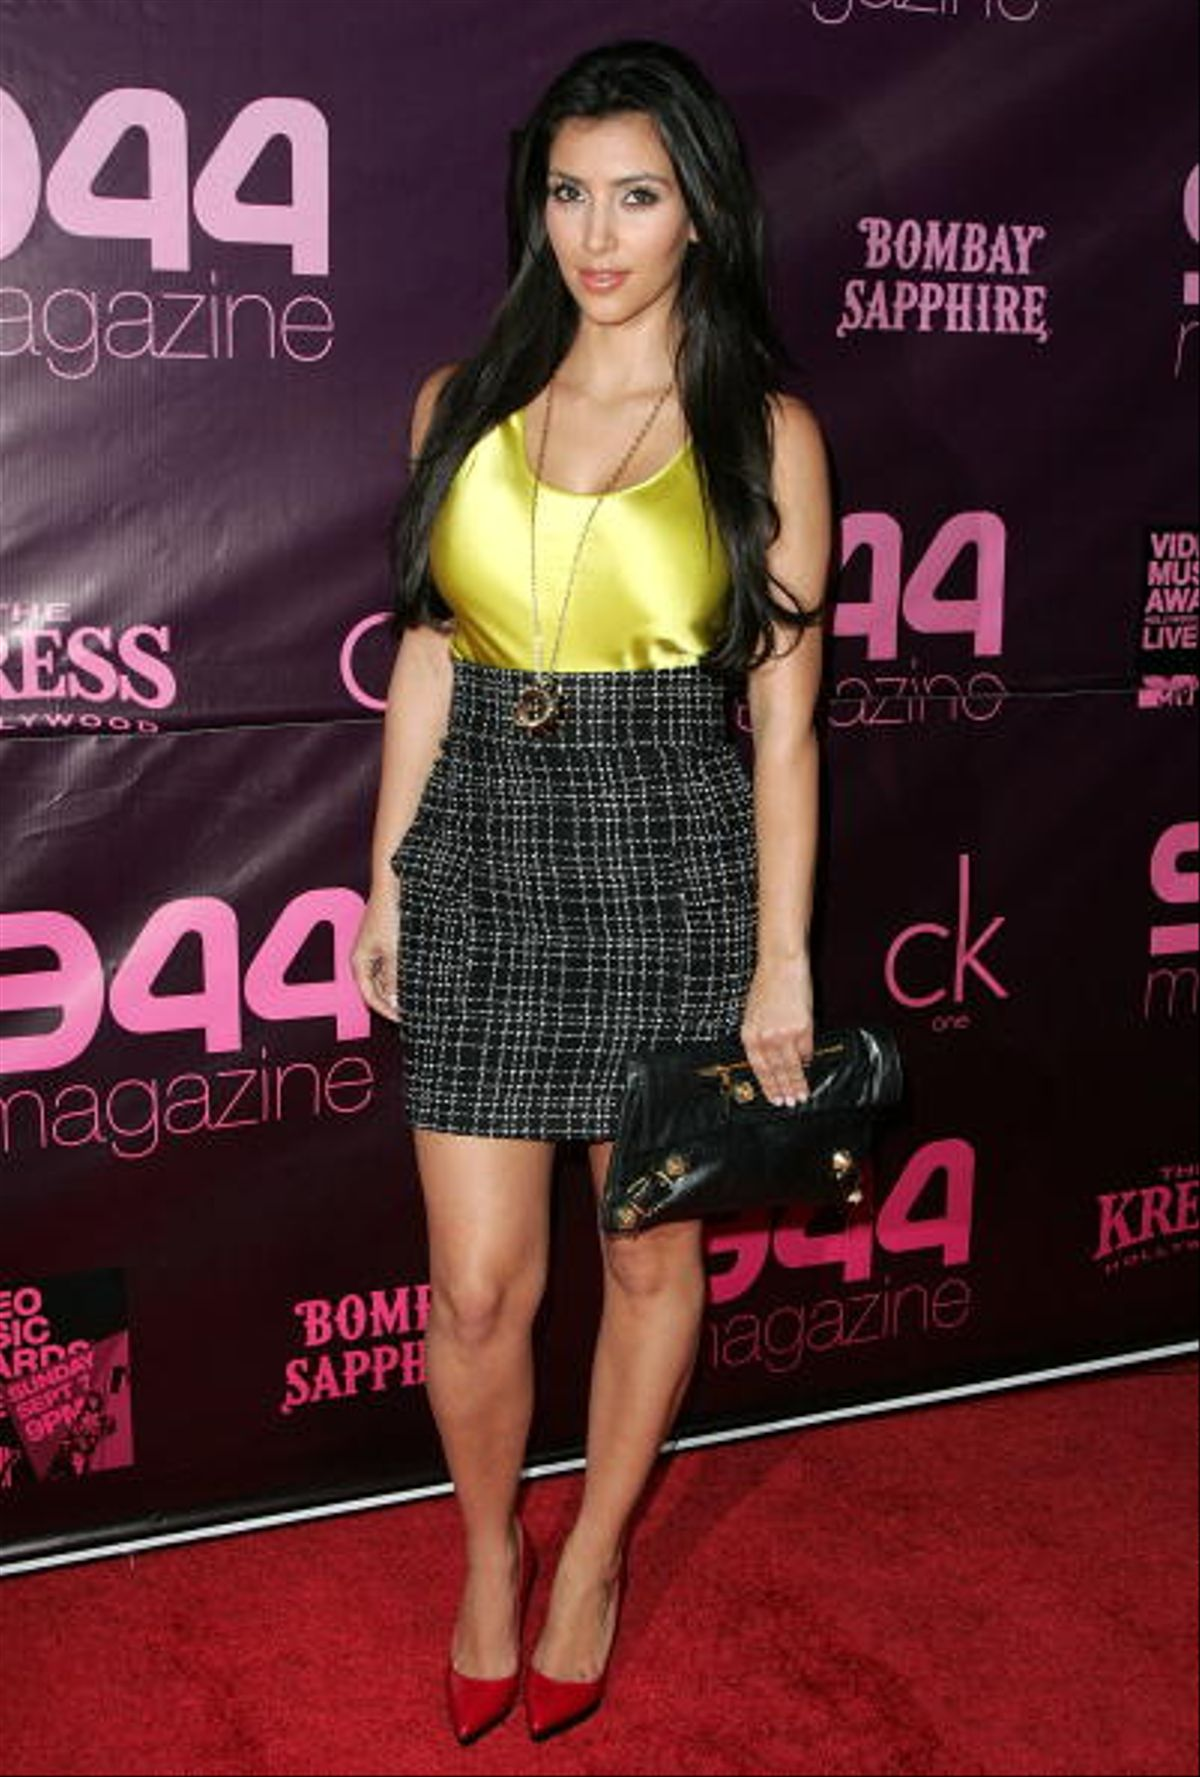 LOS ANGELES, CA - SEPTEMBER 03: TV personality Kim Kardashian attends 944 Magazine's official 2008 MTV Video Music Awards Kickoff Party at The Kress on September, 3, 2008 in Hollywood, California. (Photo by Jason LaVeris/FilmMagic)